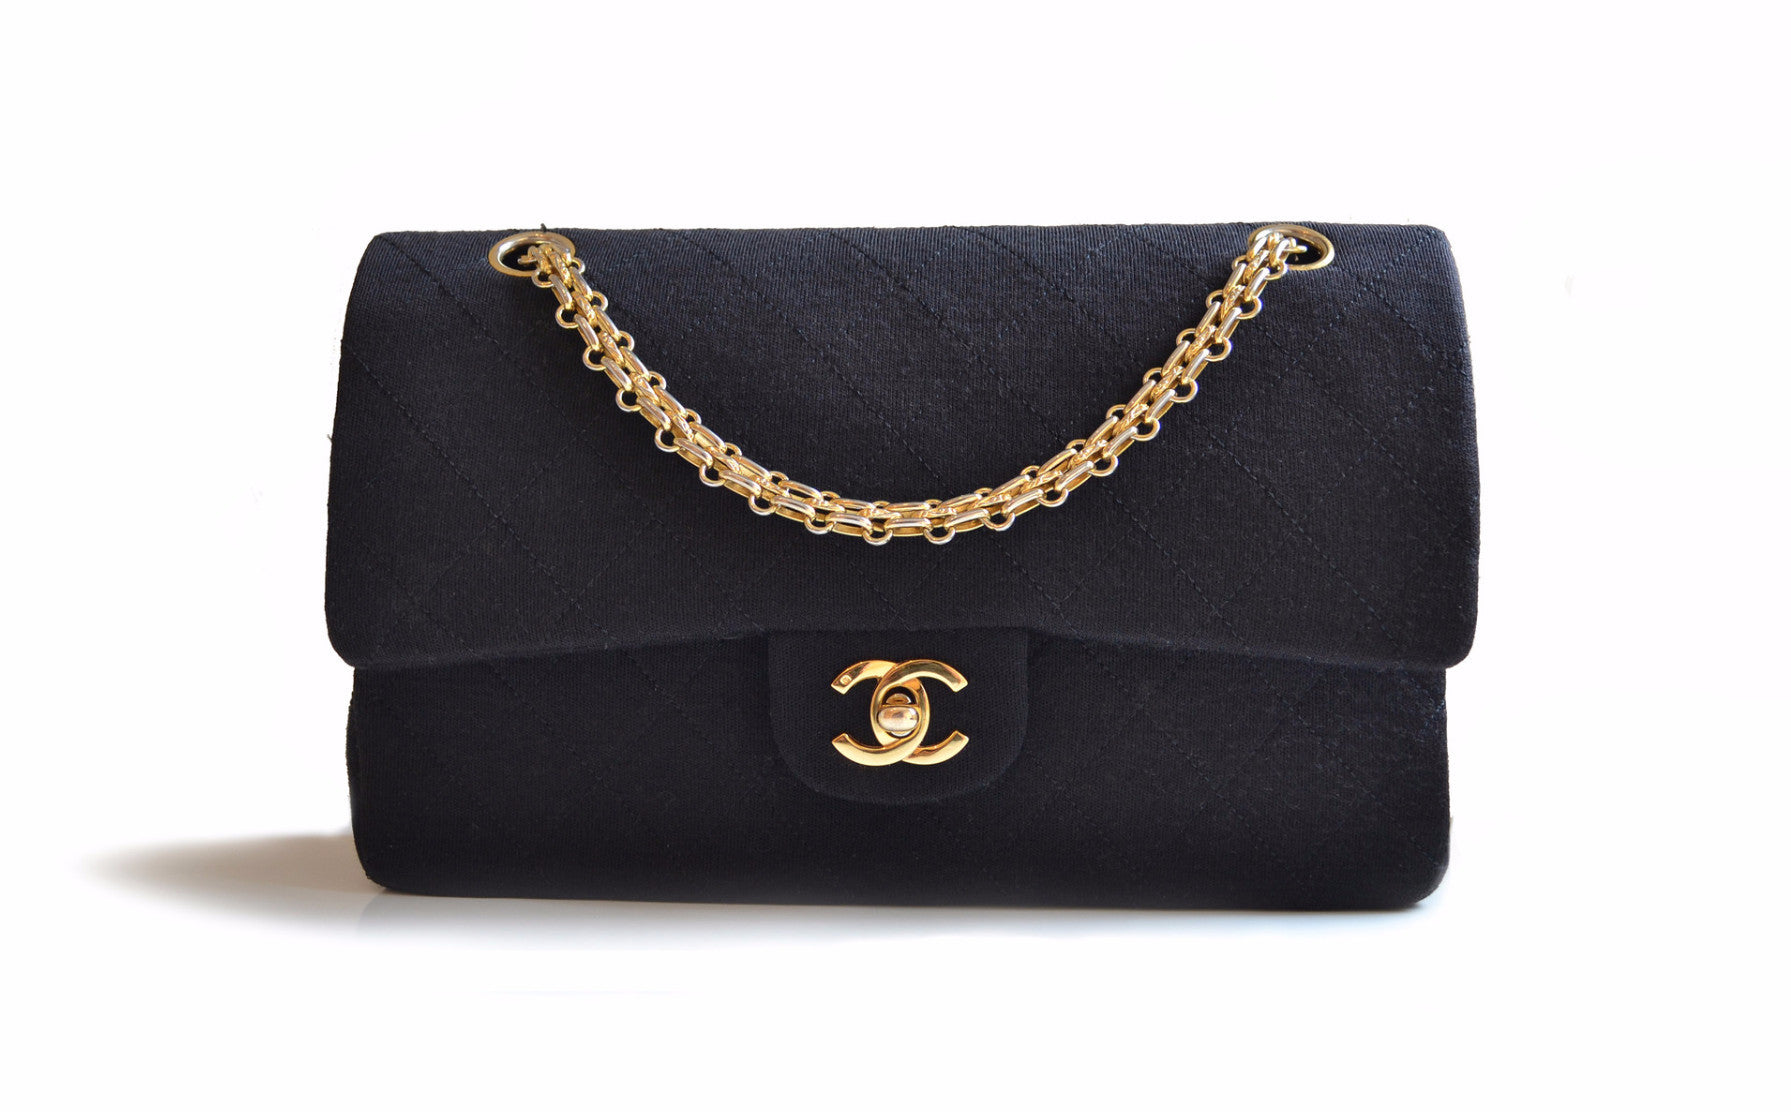 800befe586cd VINTAGE CHANEL 2.55 BAG - Classic Quilted Jersey in Black - Vintage District